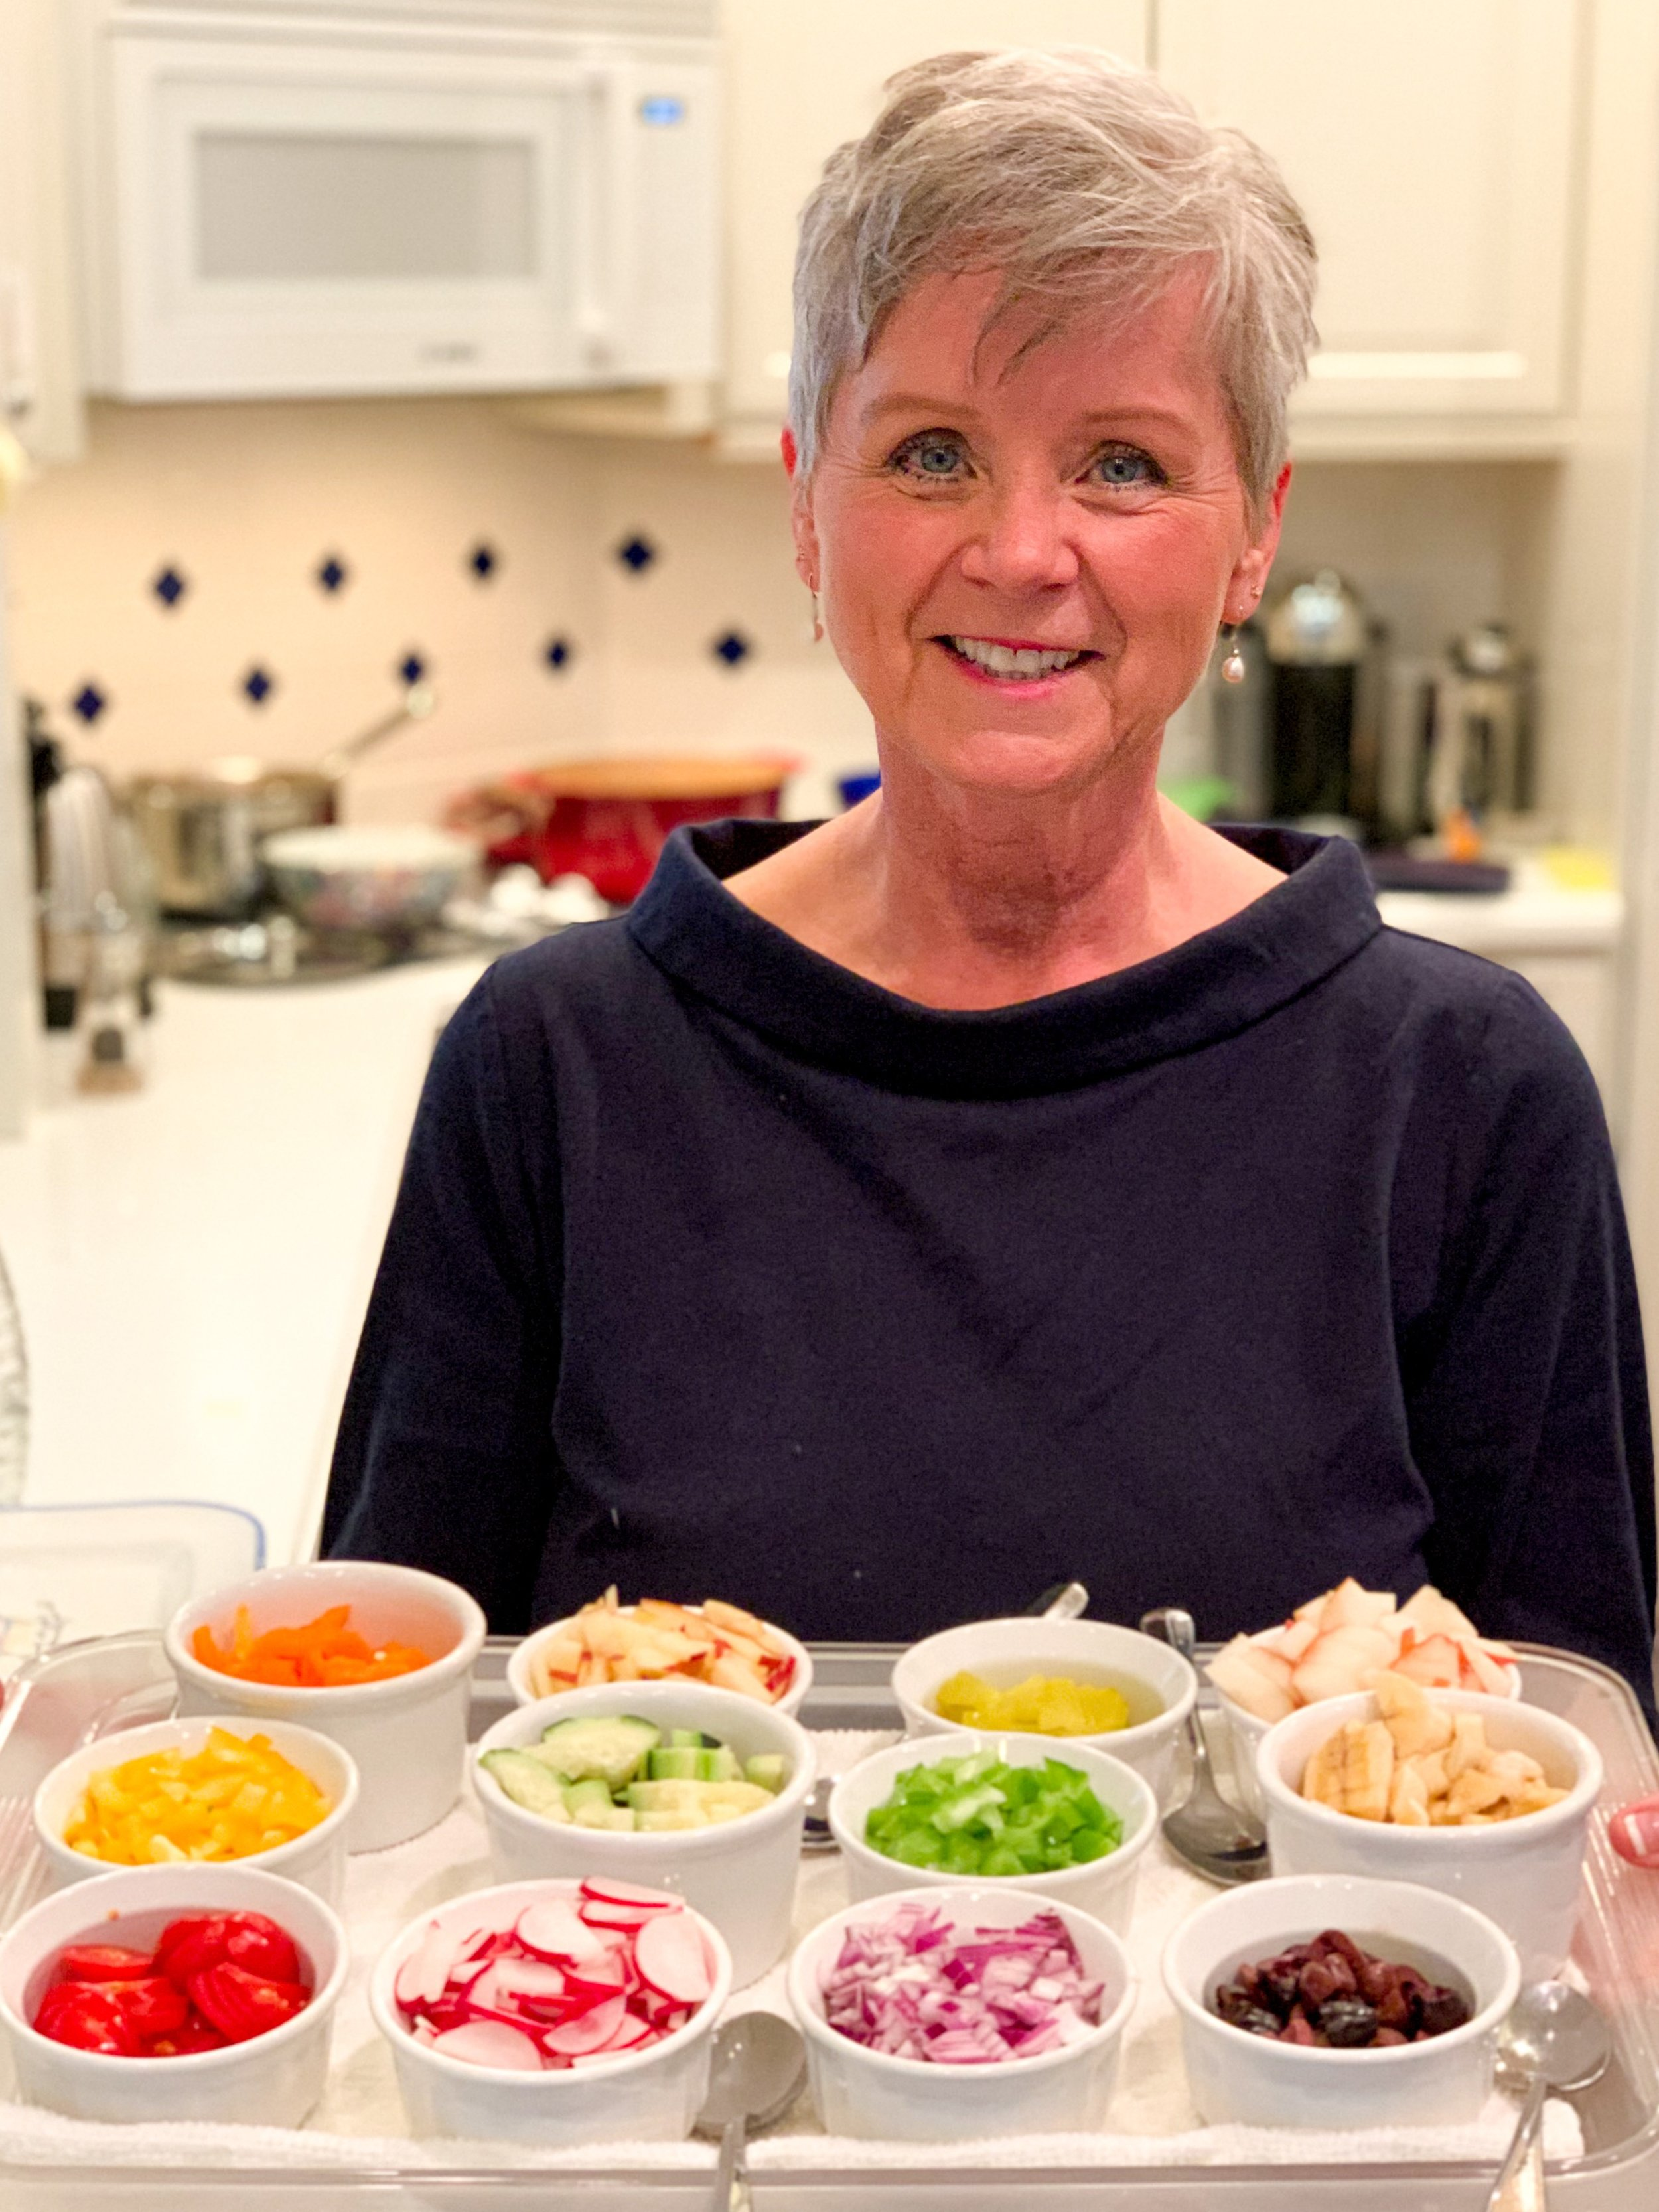 Auntie Linda brings our feast to the table